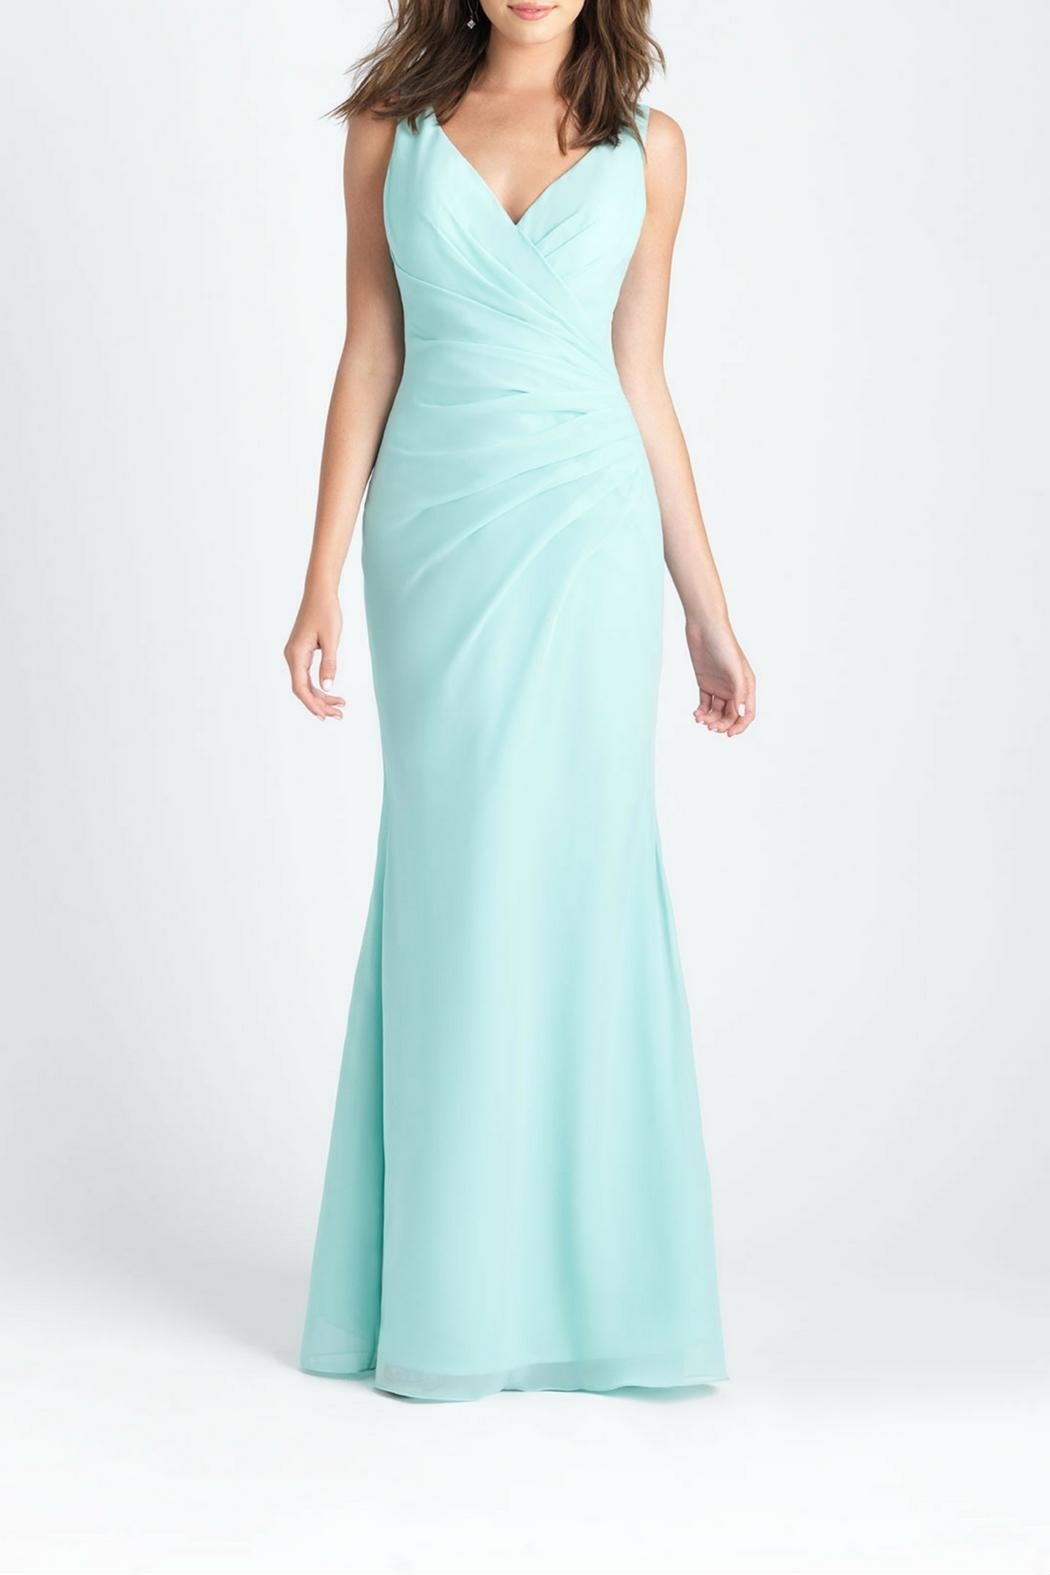 Allure Bridals Lace Back Bridesmaid Dress from North